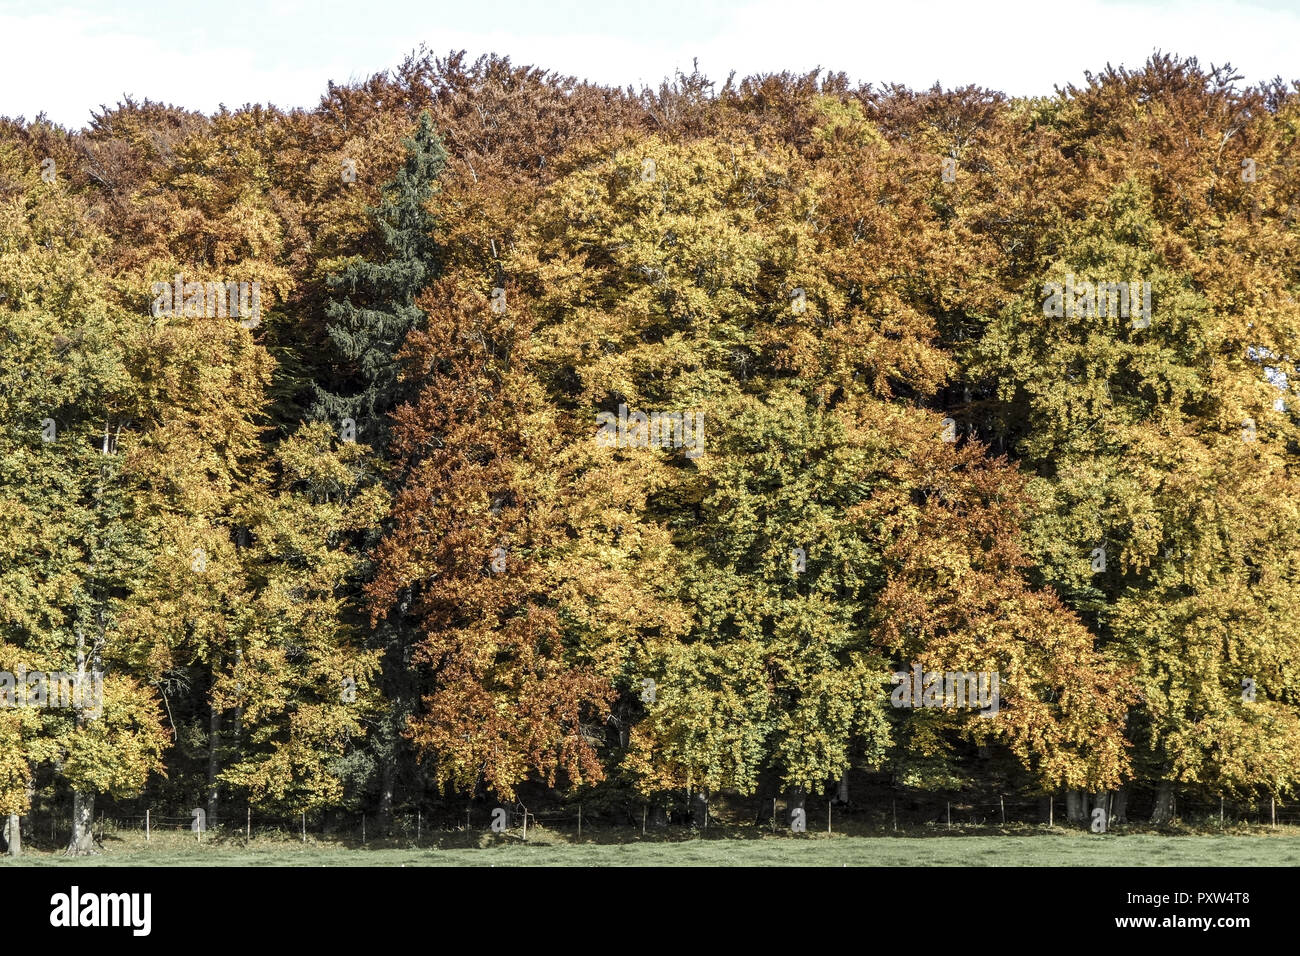 Farbiger Laubwald im Herbst, Colored leaves in autumn deciduous forest, Tree, Trees, Autumn, Colors, Fall, Foliage, Autumnal, Mood, Idyllic, Leaves, D - Stock Image